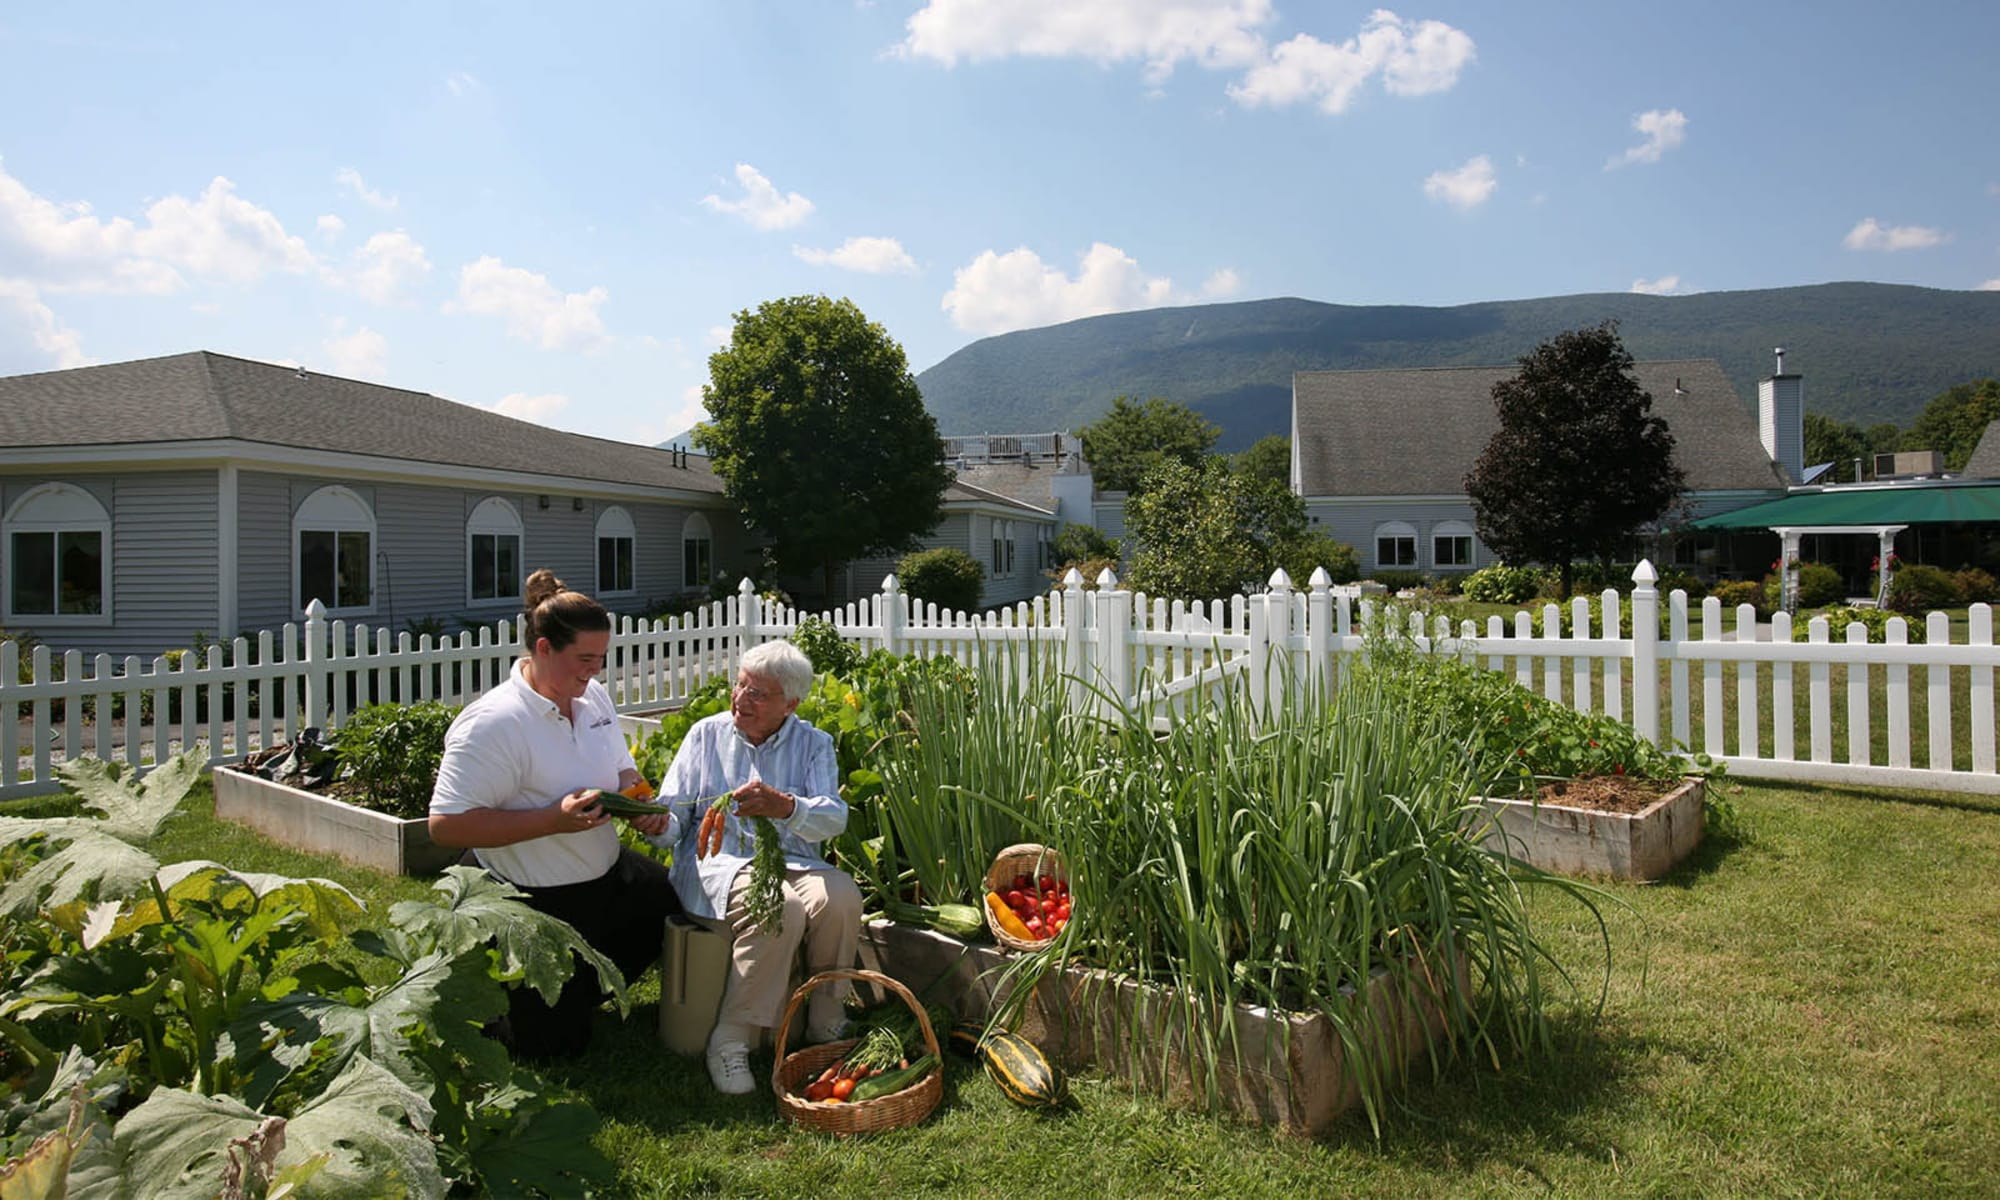 Senior living at Equinox Terrace in Manchester Center, Vermont